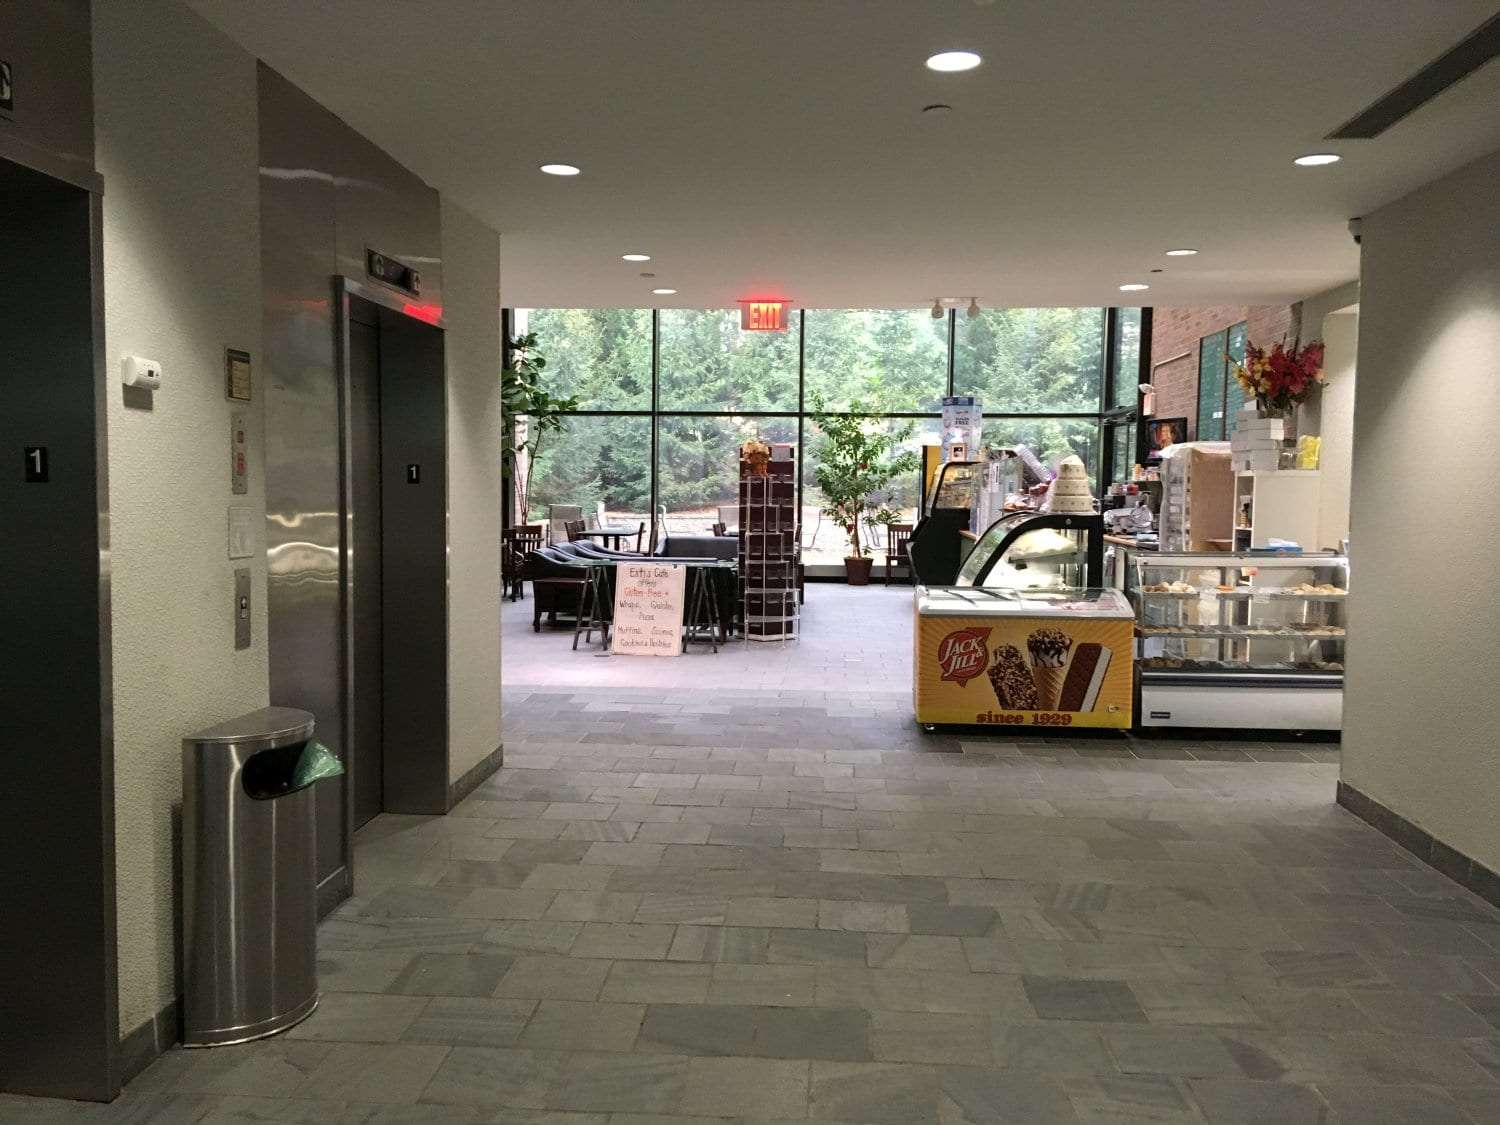 This is an image of a cafe in the same building as our physical therapy clinic in Oradell, New Jersey.